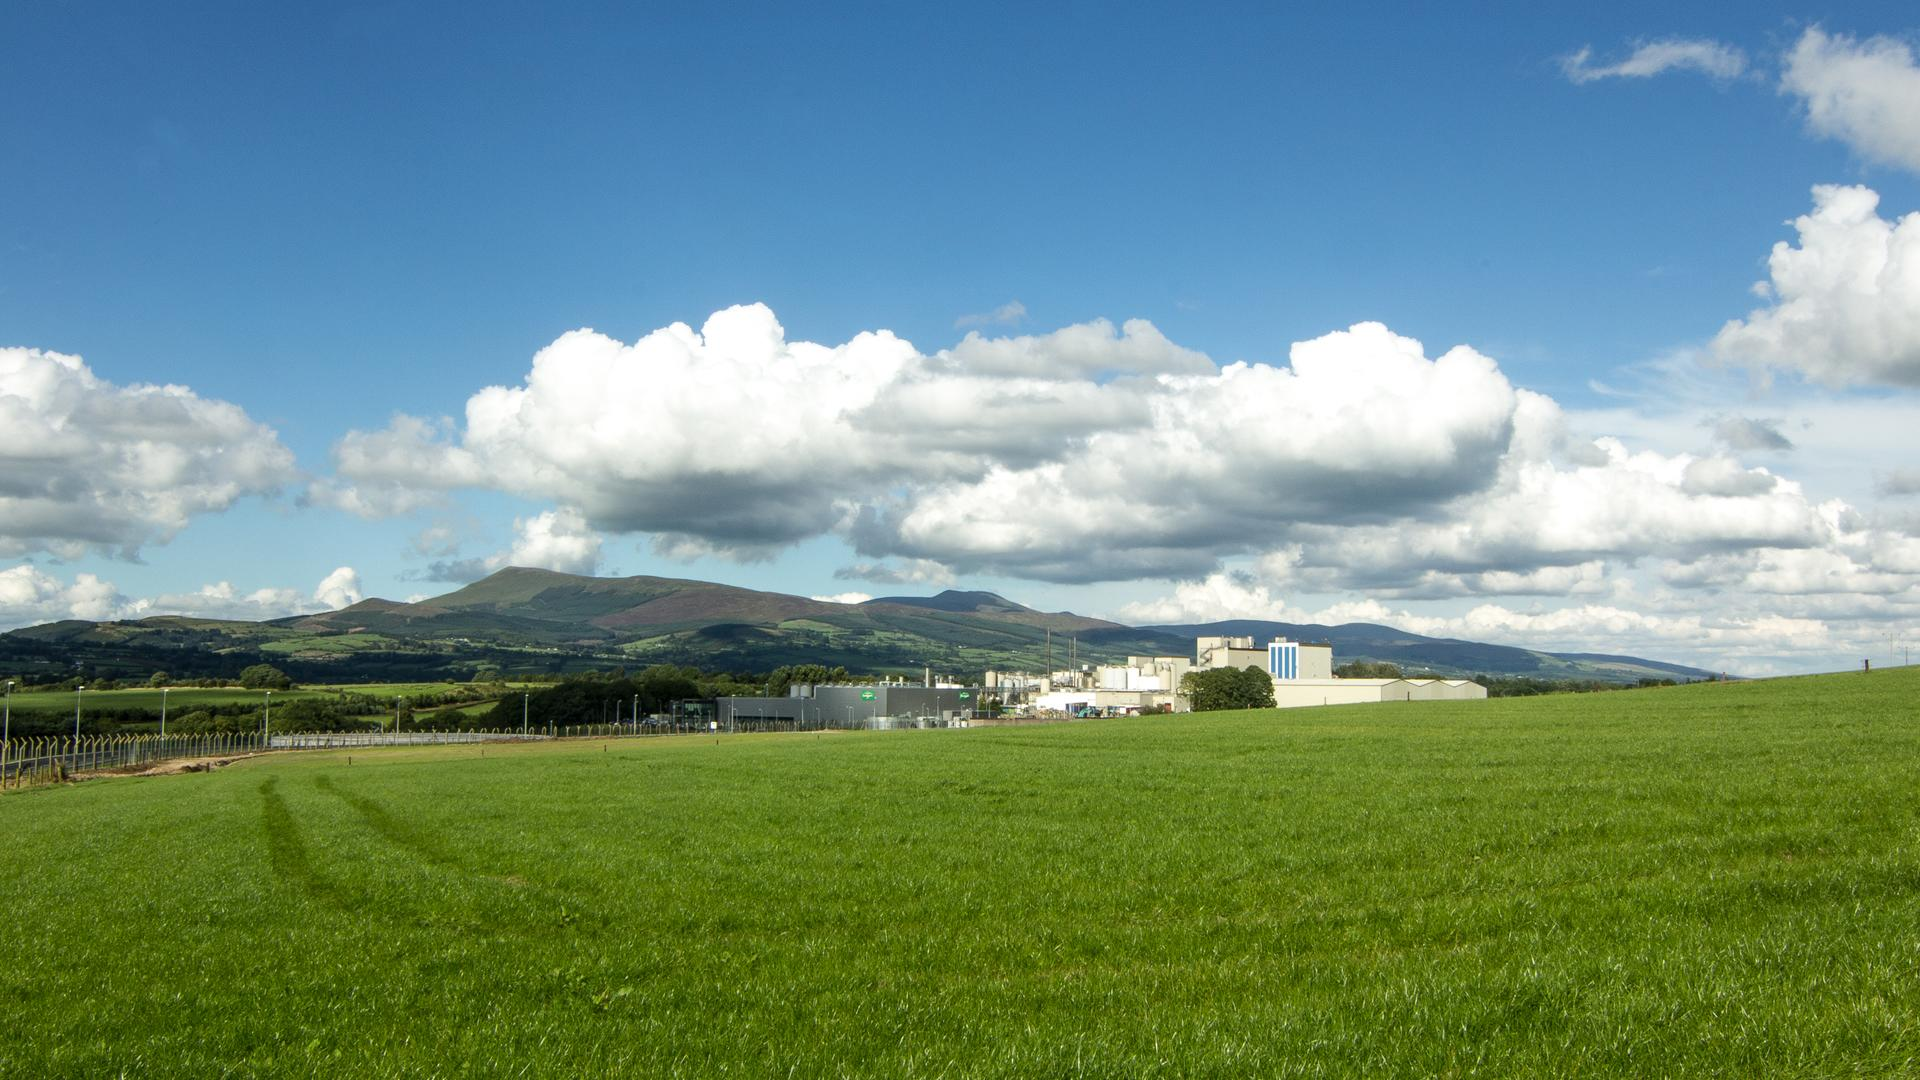 What Sustainability Means for Dairygold – Dairygold Adopts a New Policy